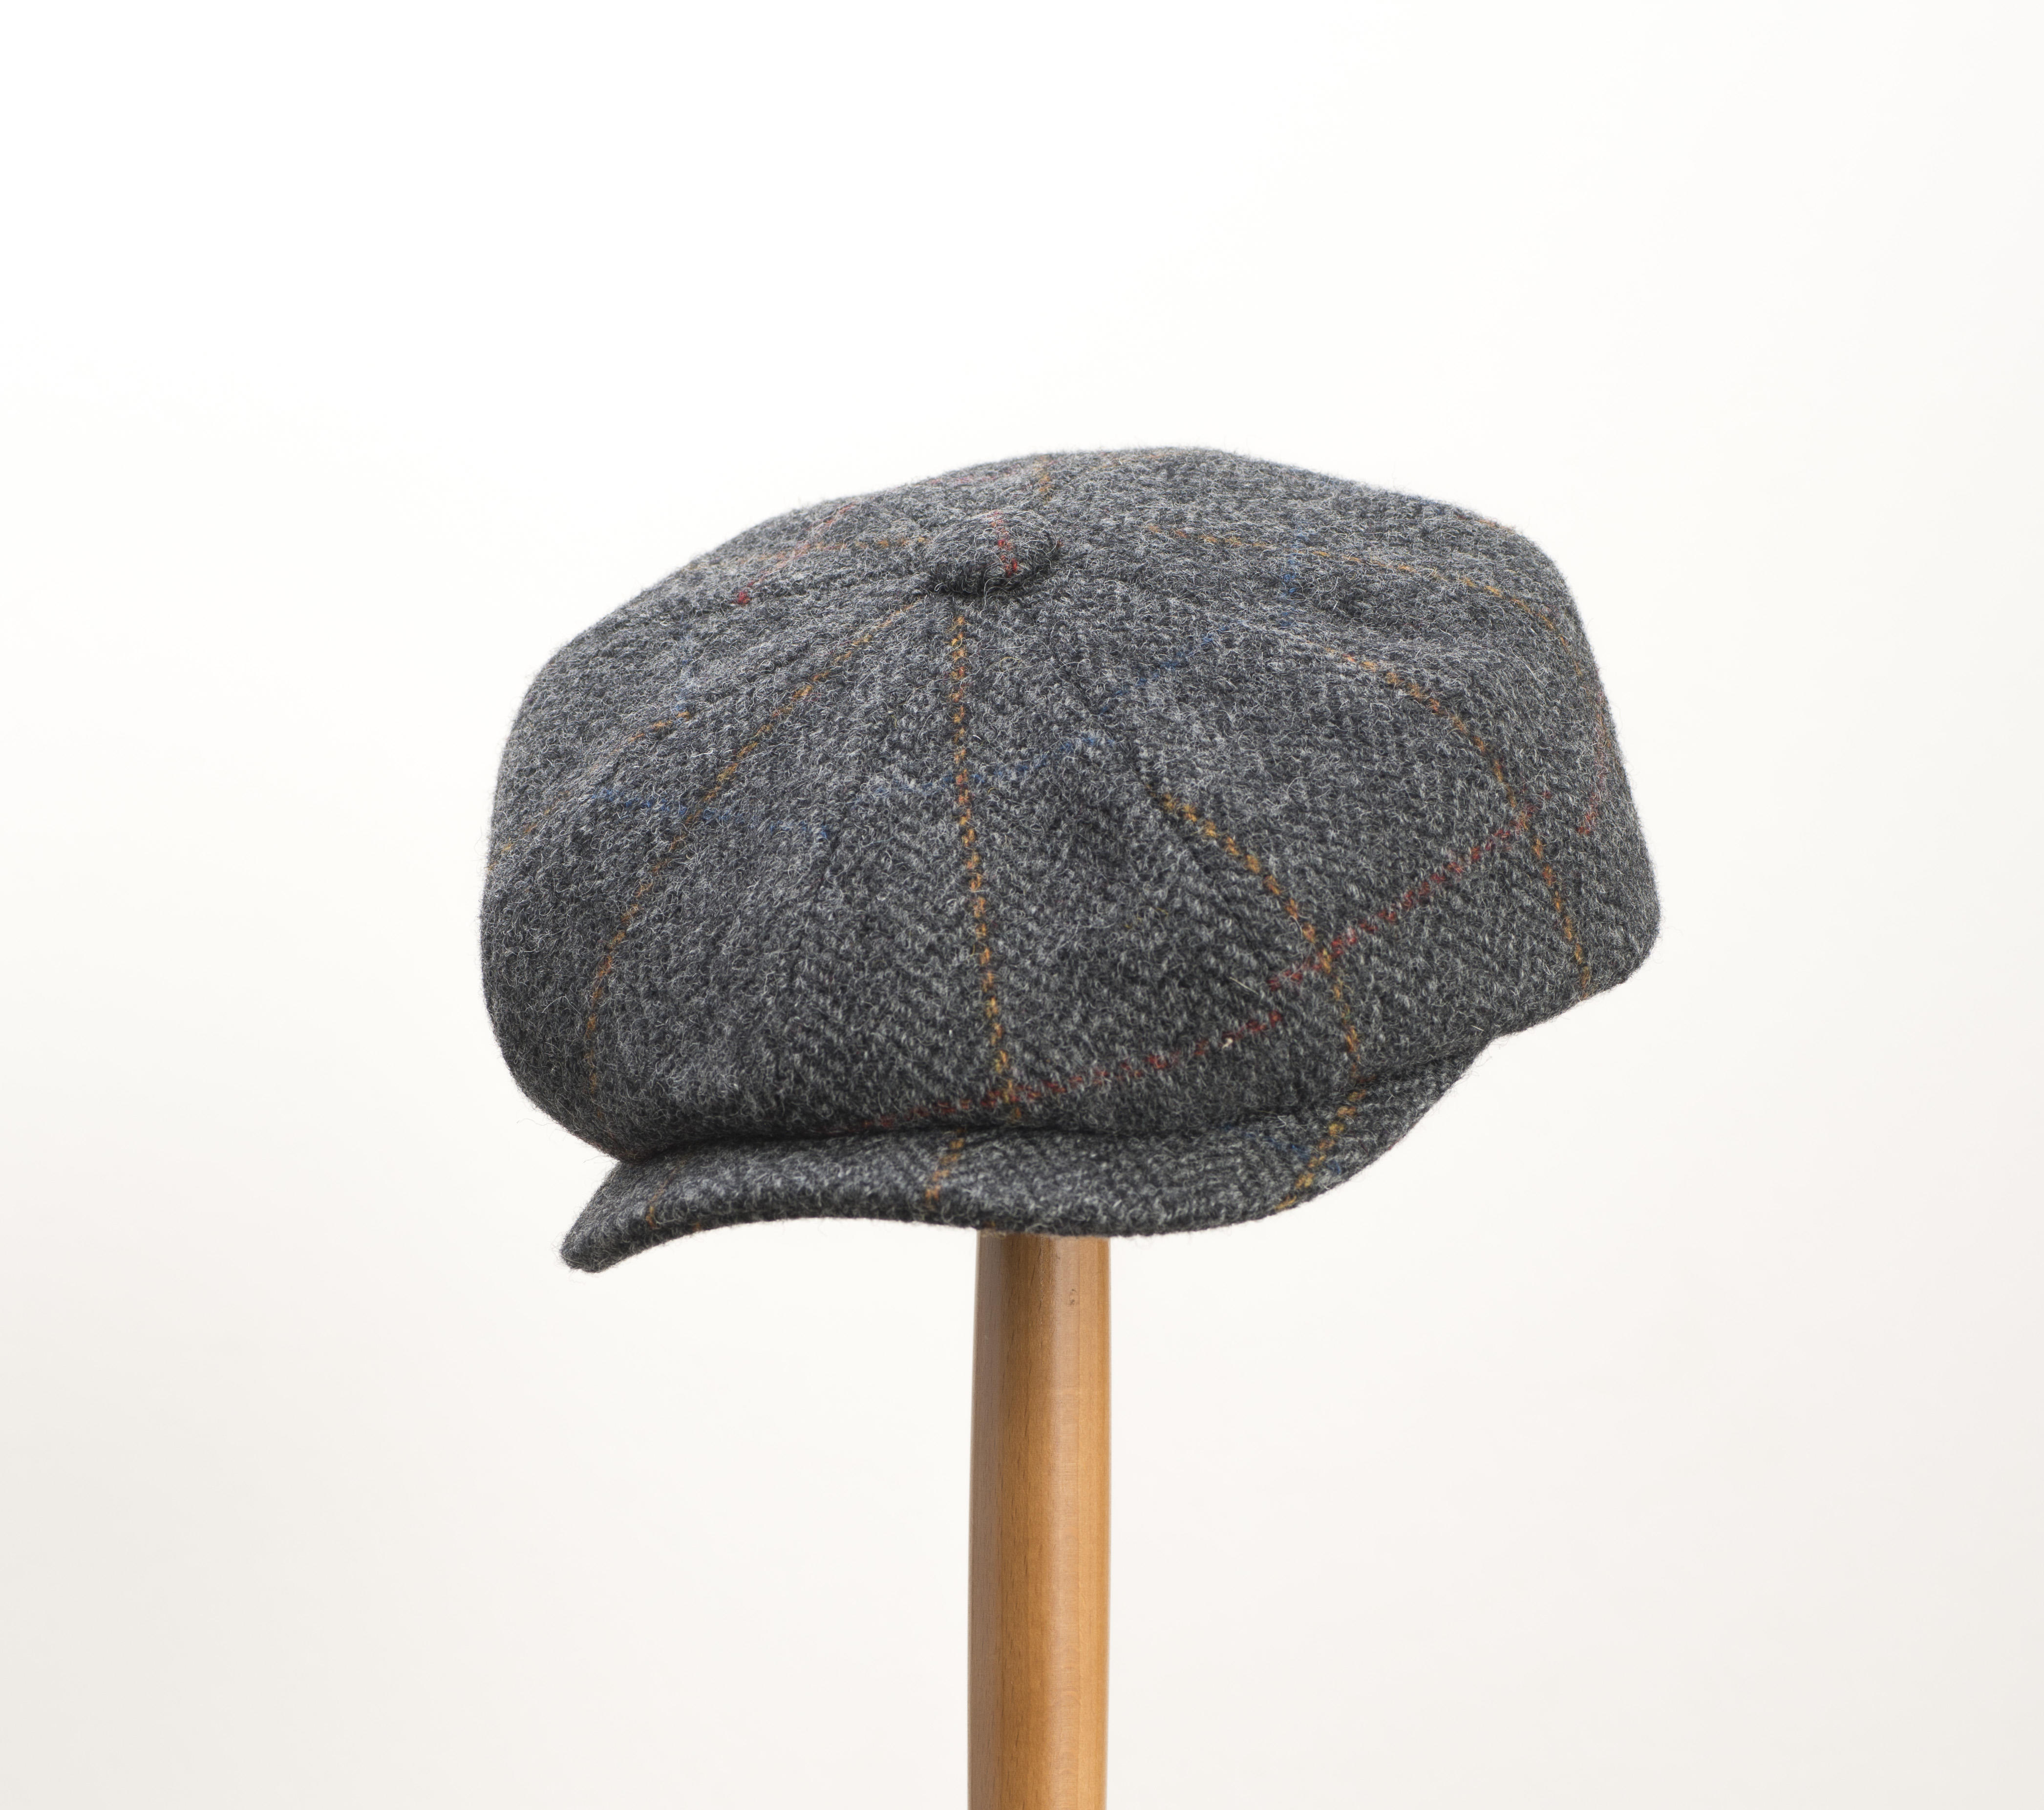 d64d29e88ae Whiteley Estate Check Tweed Newsboy Cap - Charcoal